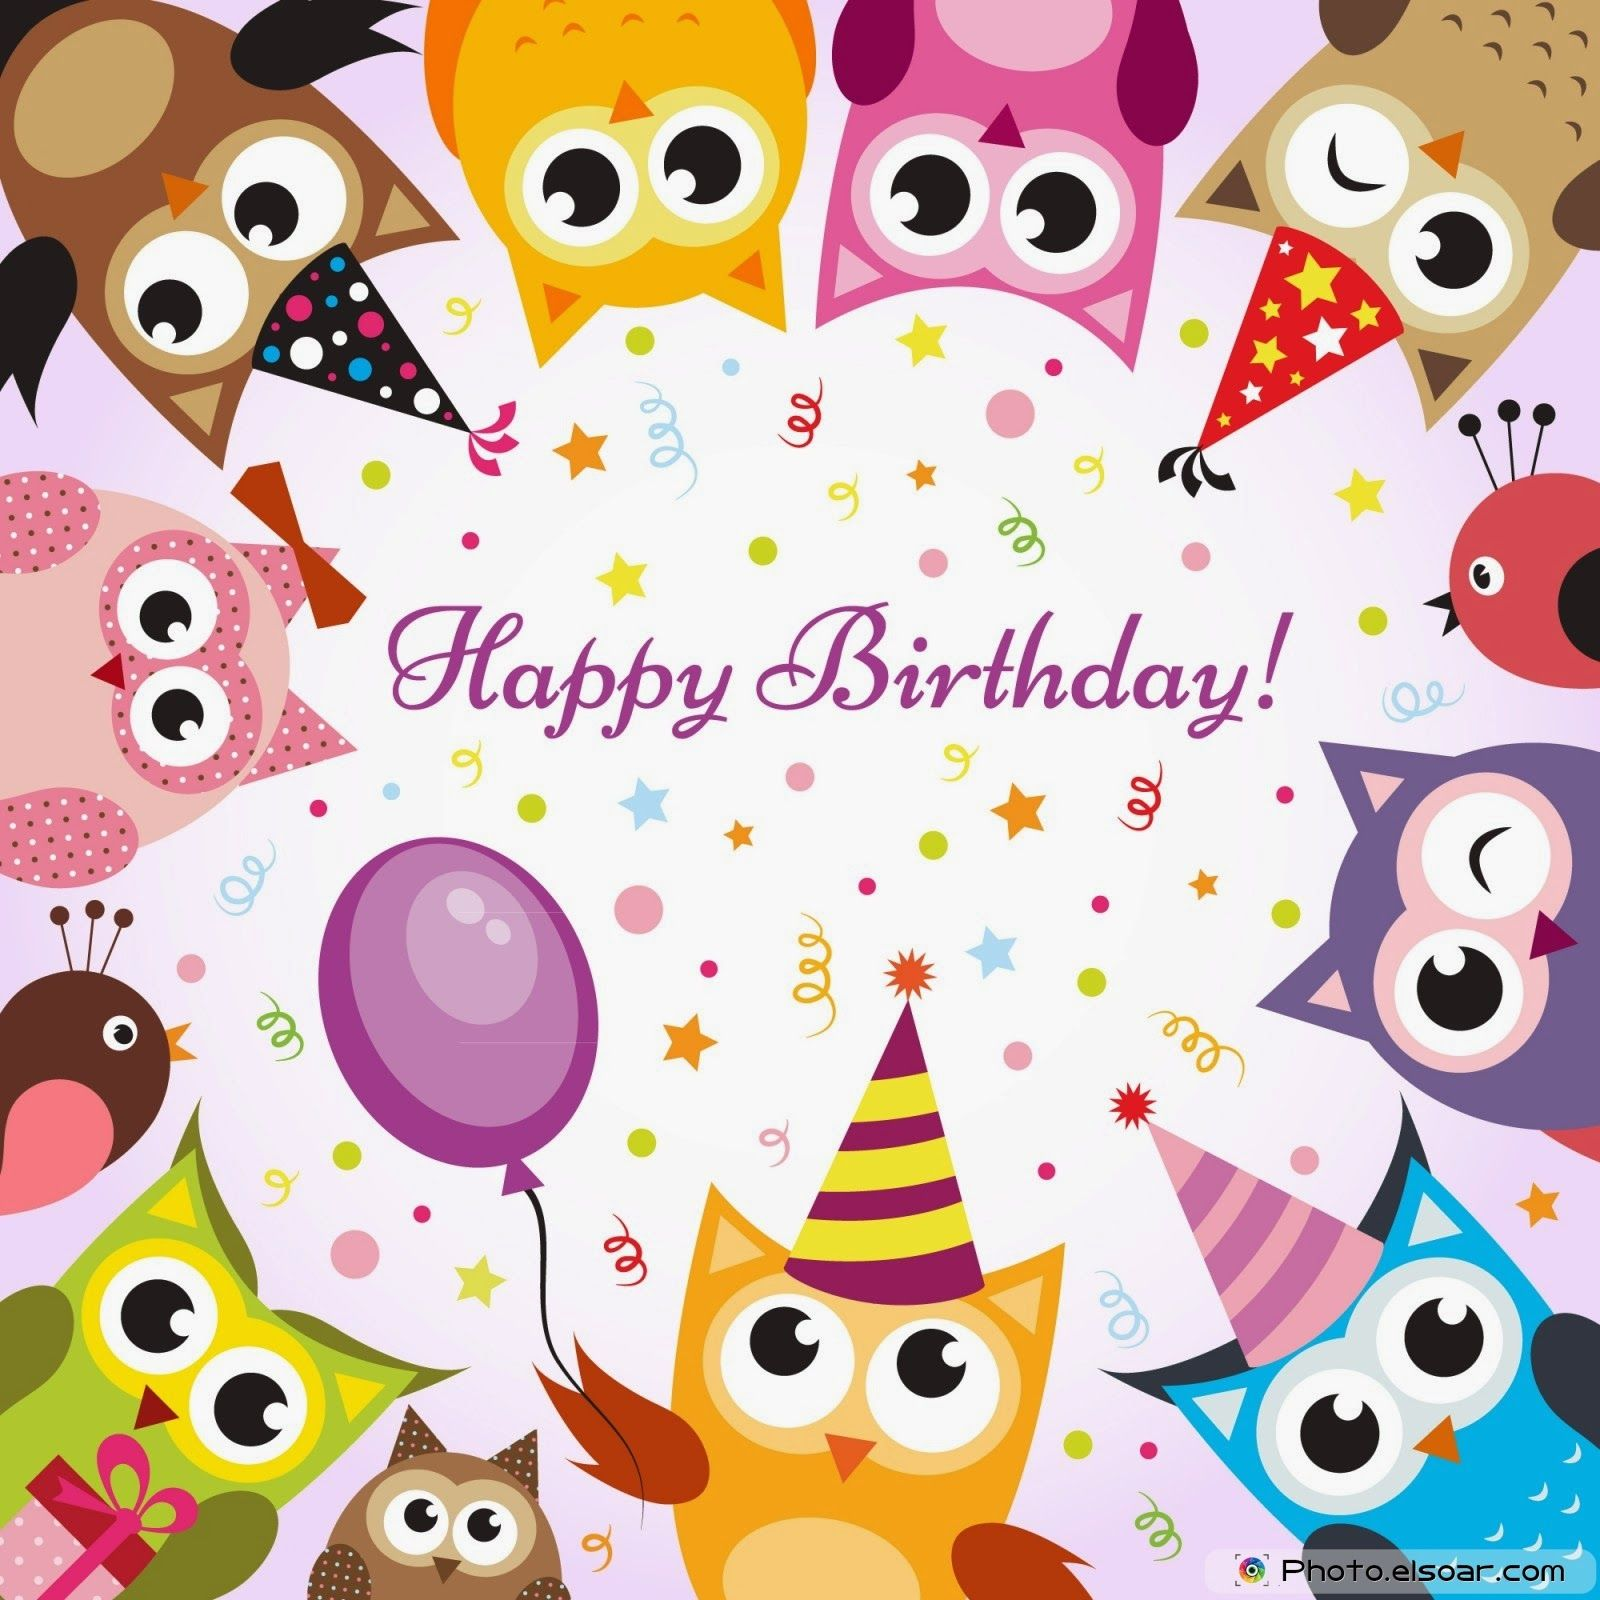 Happy Birthday Quotes Pictures Images Free Download Sms Wishes Poetry Happy Birthday Owl Happy Birthday Cards Happy Birthday Greetings